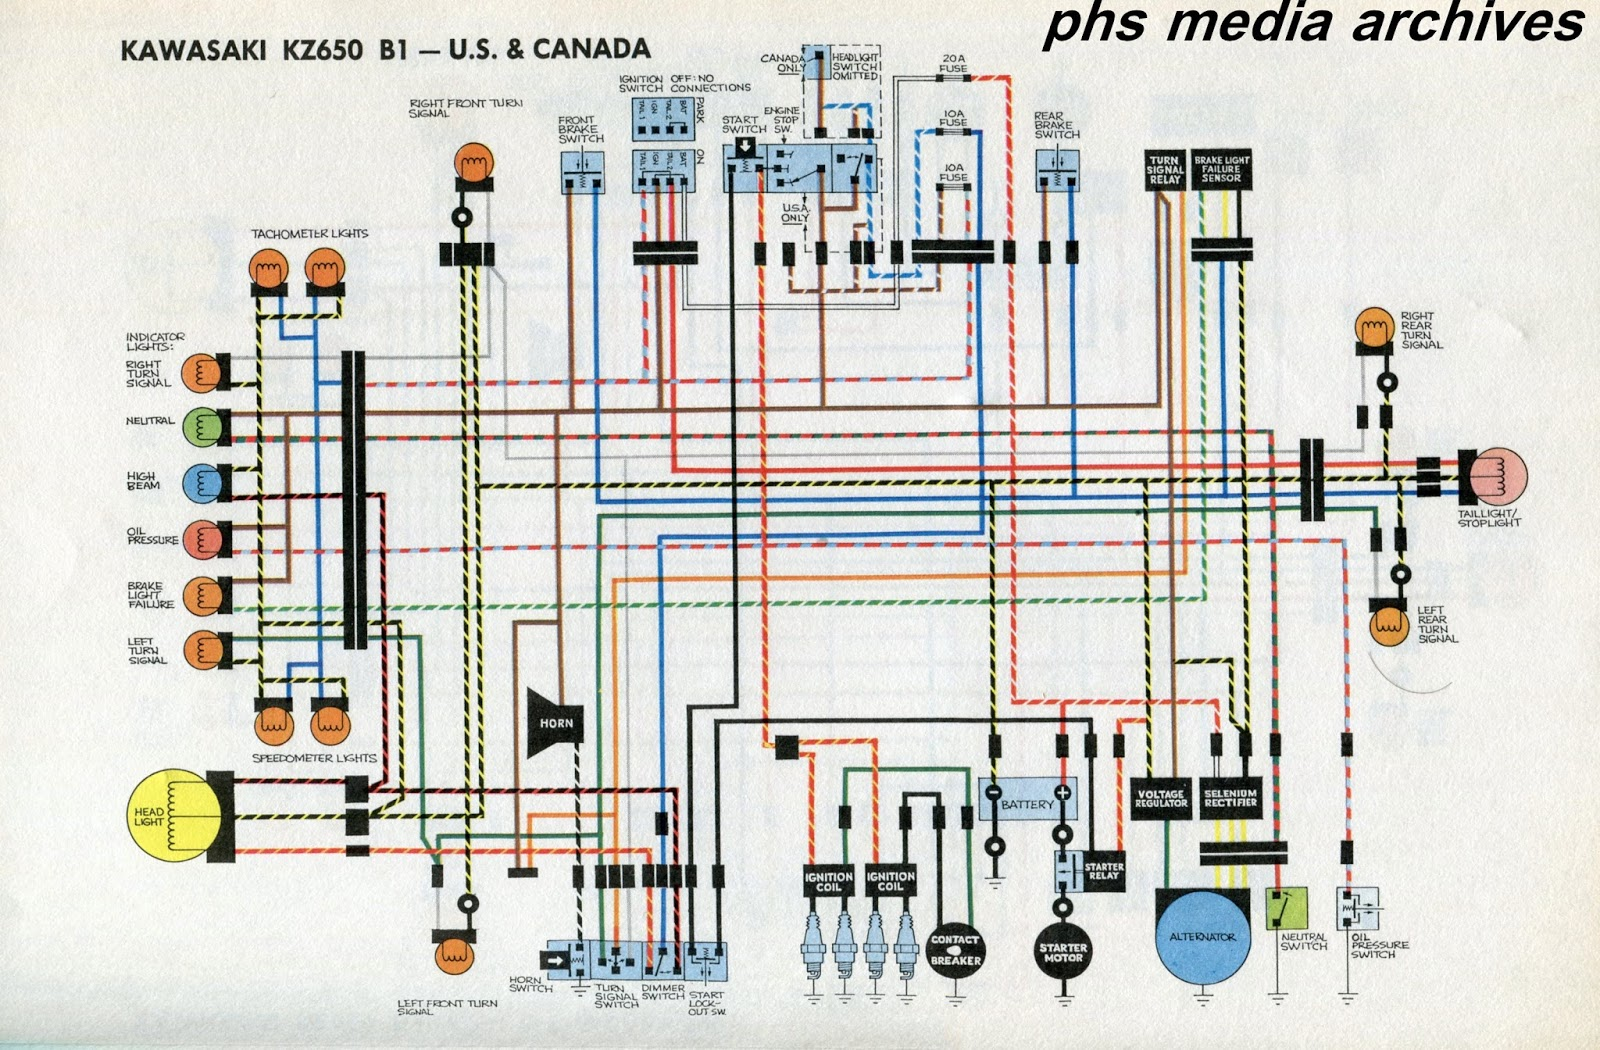 Tech Series Kawasaki Kz650 Wiring Diagrams Phscollectorcarworld Symbols Chart On Standard Diagram Oddly Enough They Did Include For Ground One Which Is The Other Merely A Black Circle With White In Center